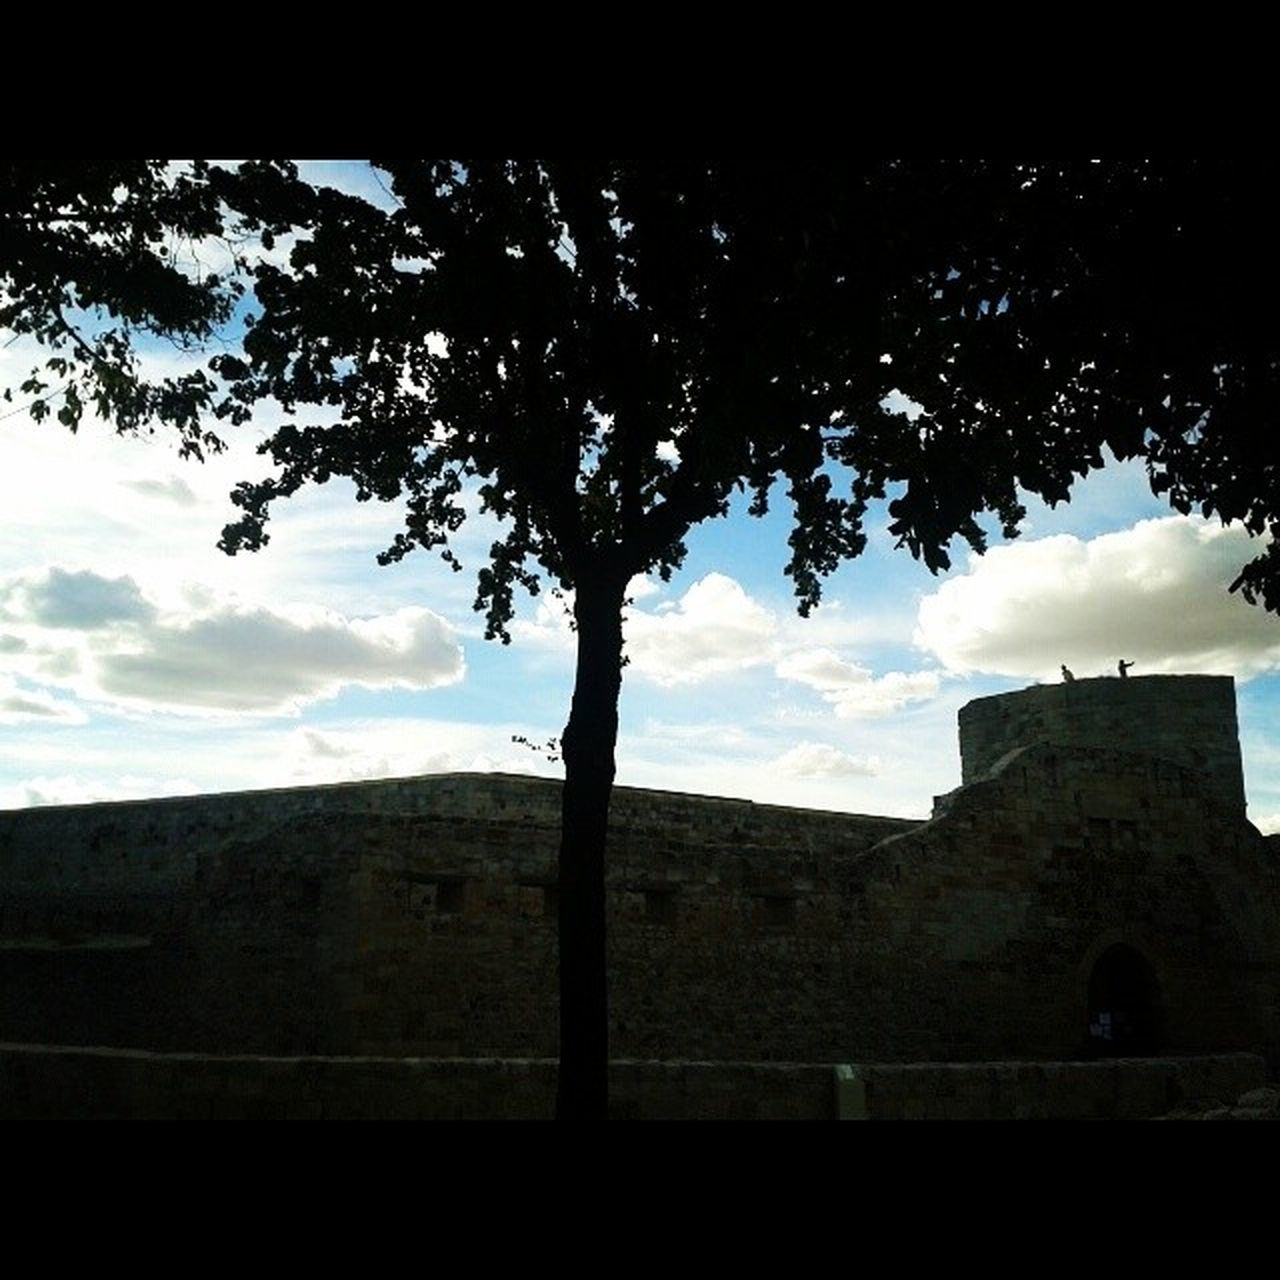 sky, history, no people, architecture, tree, day, nature, outdoors